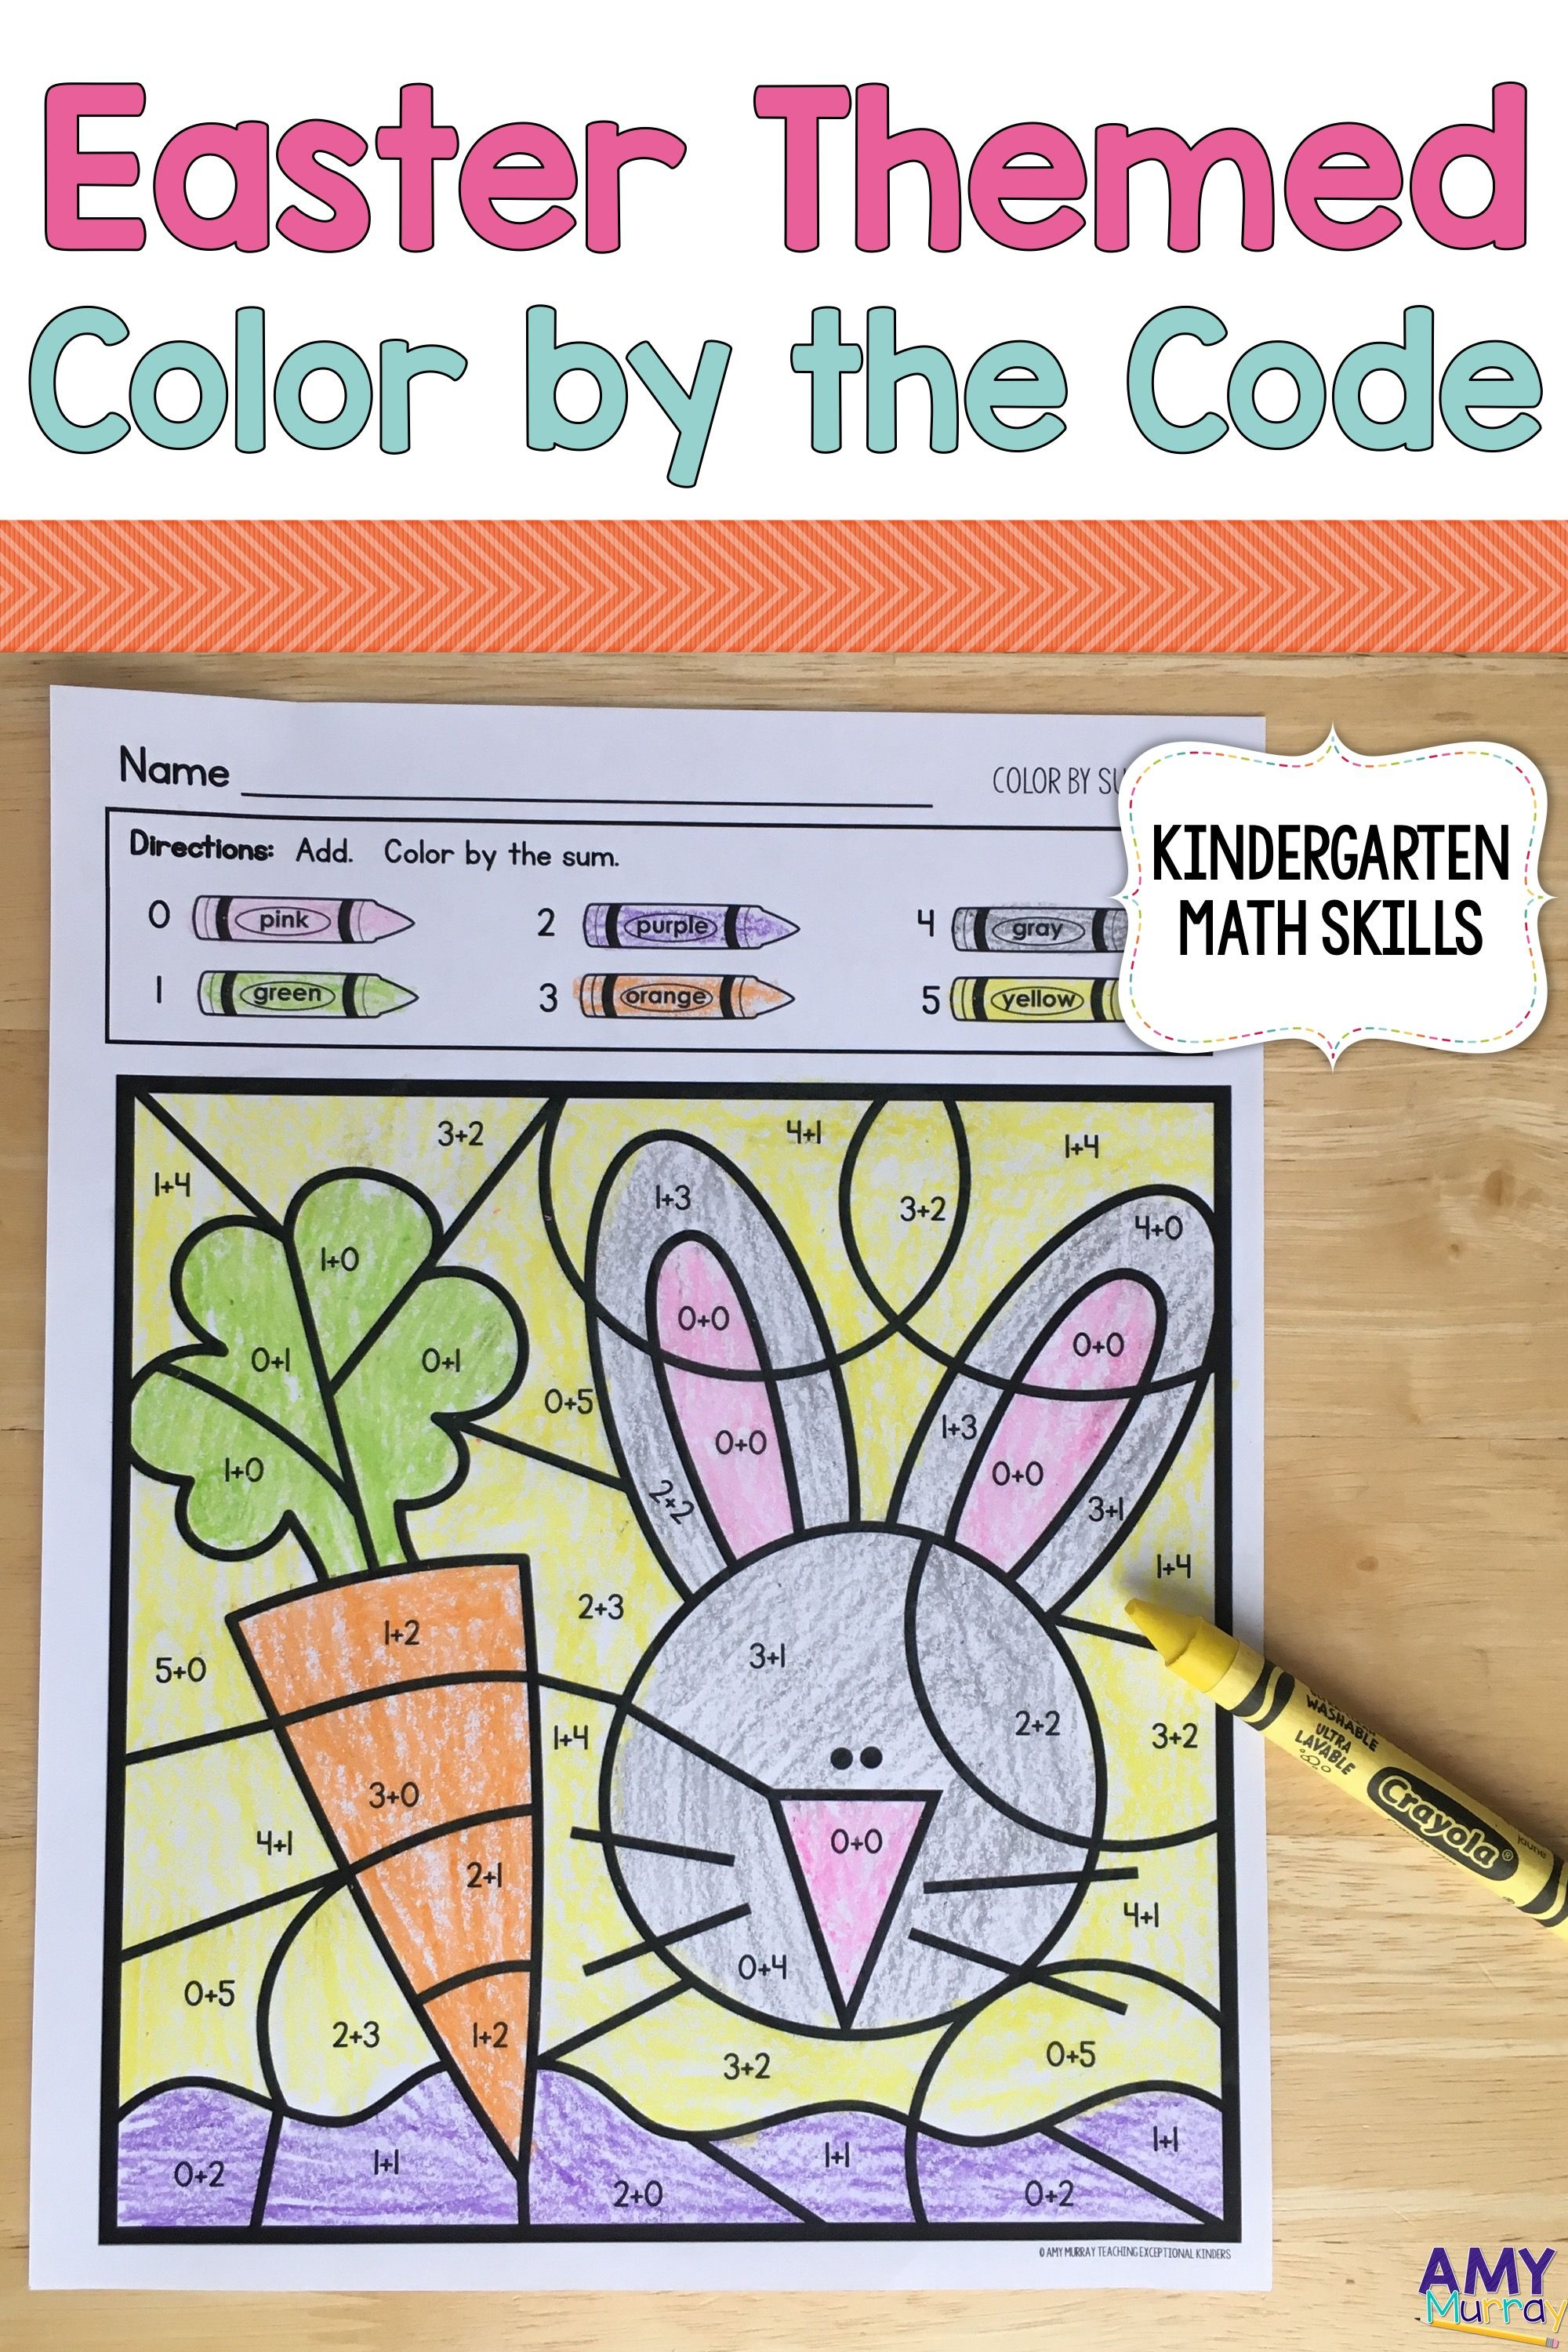 Easter Themed Color By Number Kindergarten Math Worksheets